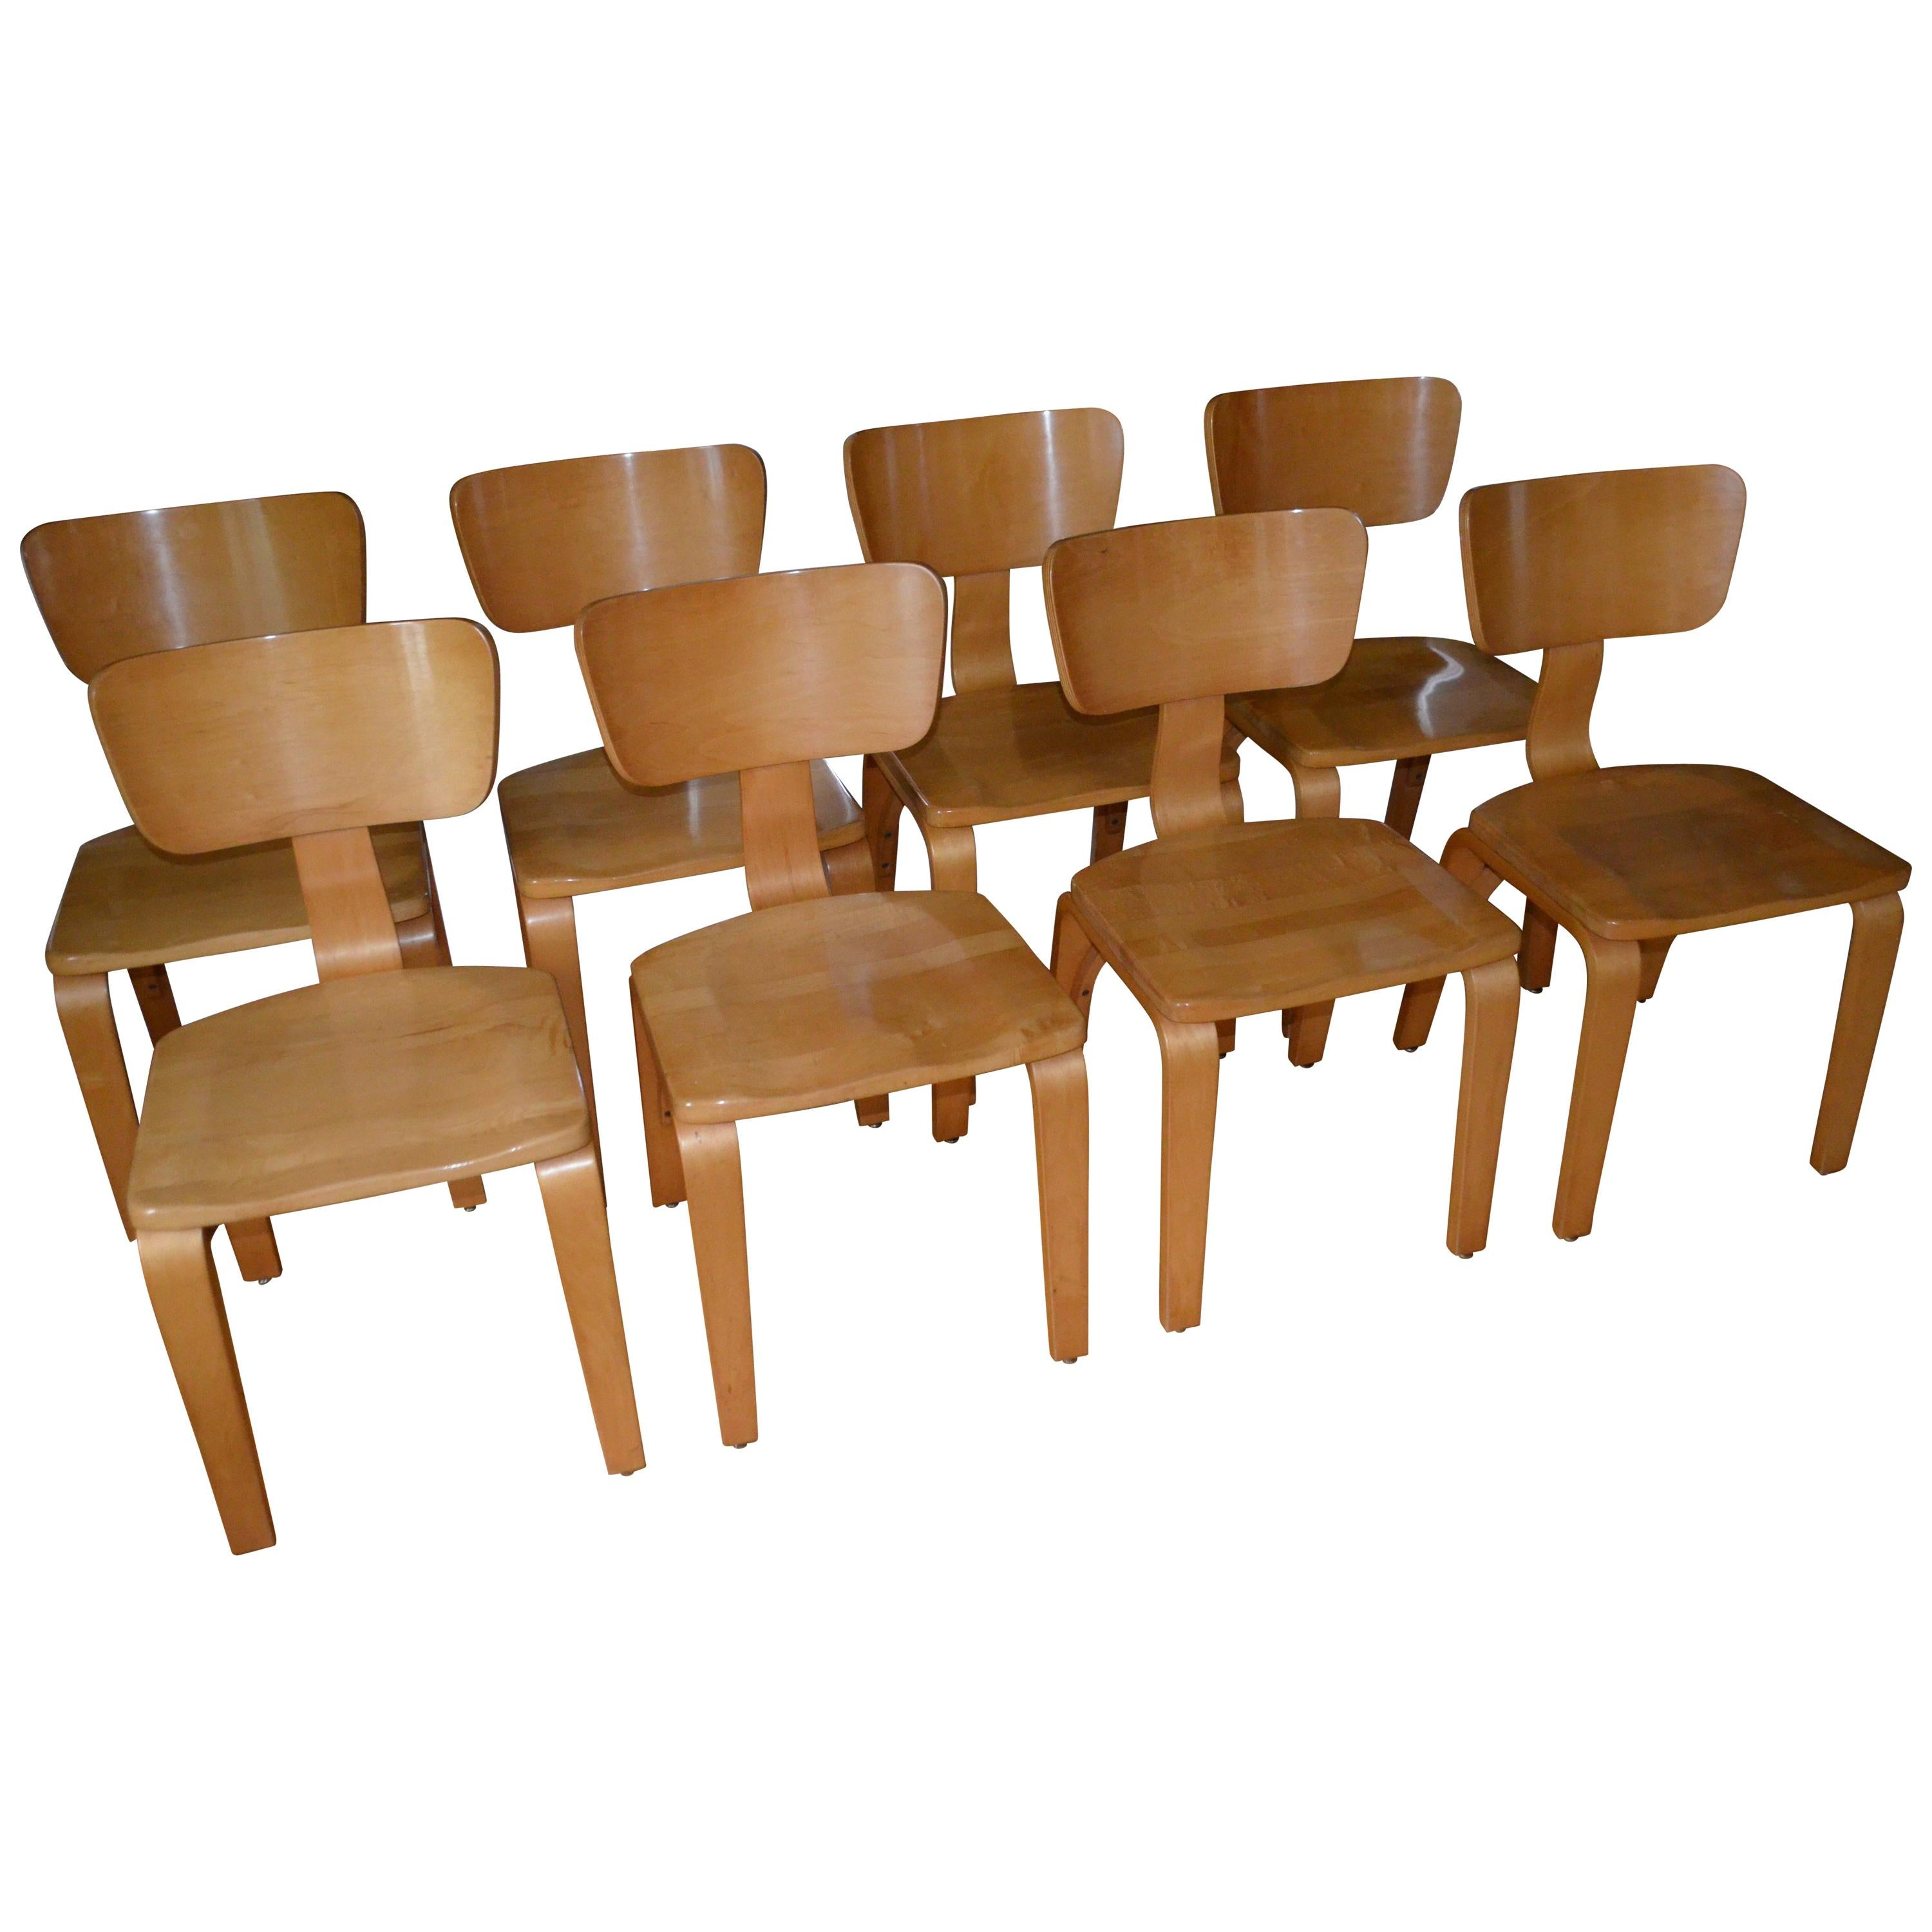 bentwood dining chair ergonomic with back support chairs by thonet of rock maple and set eight for sale